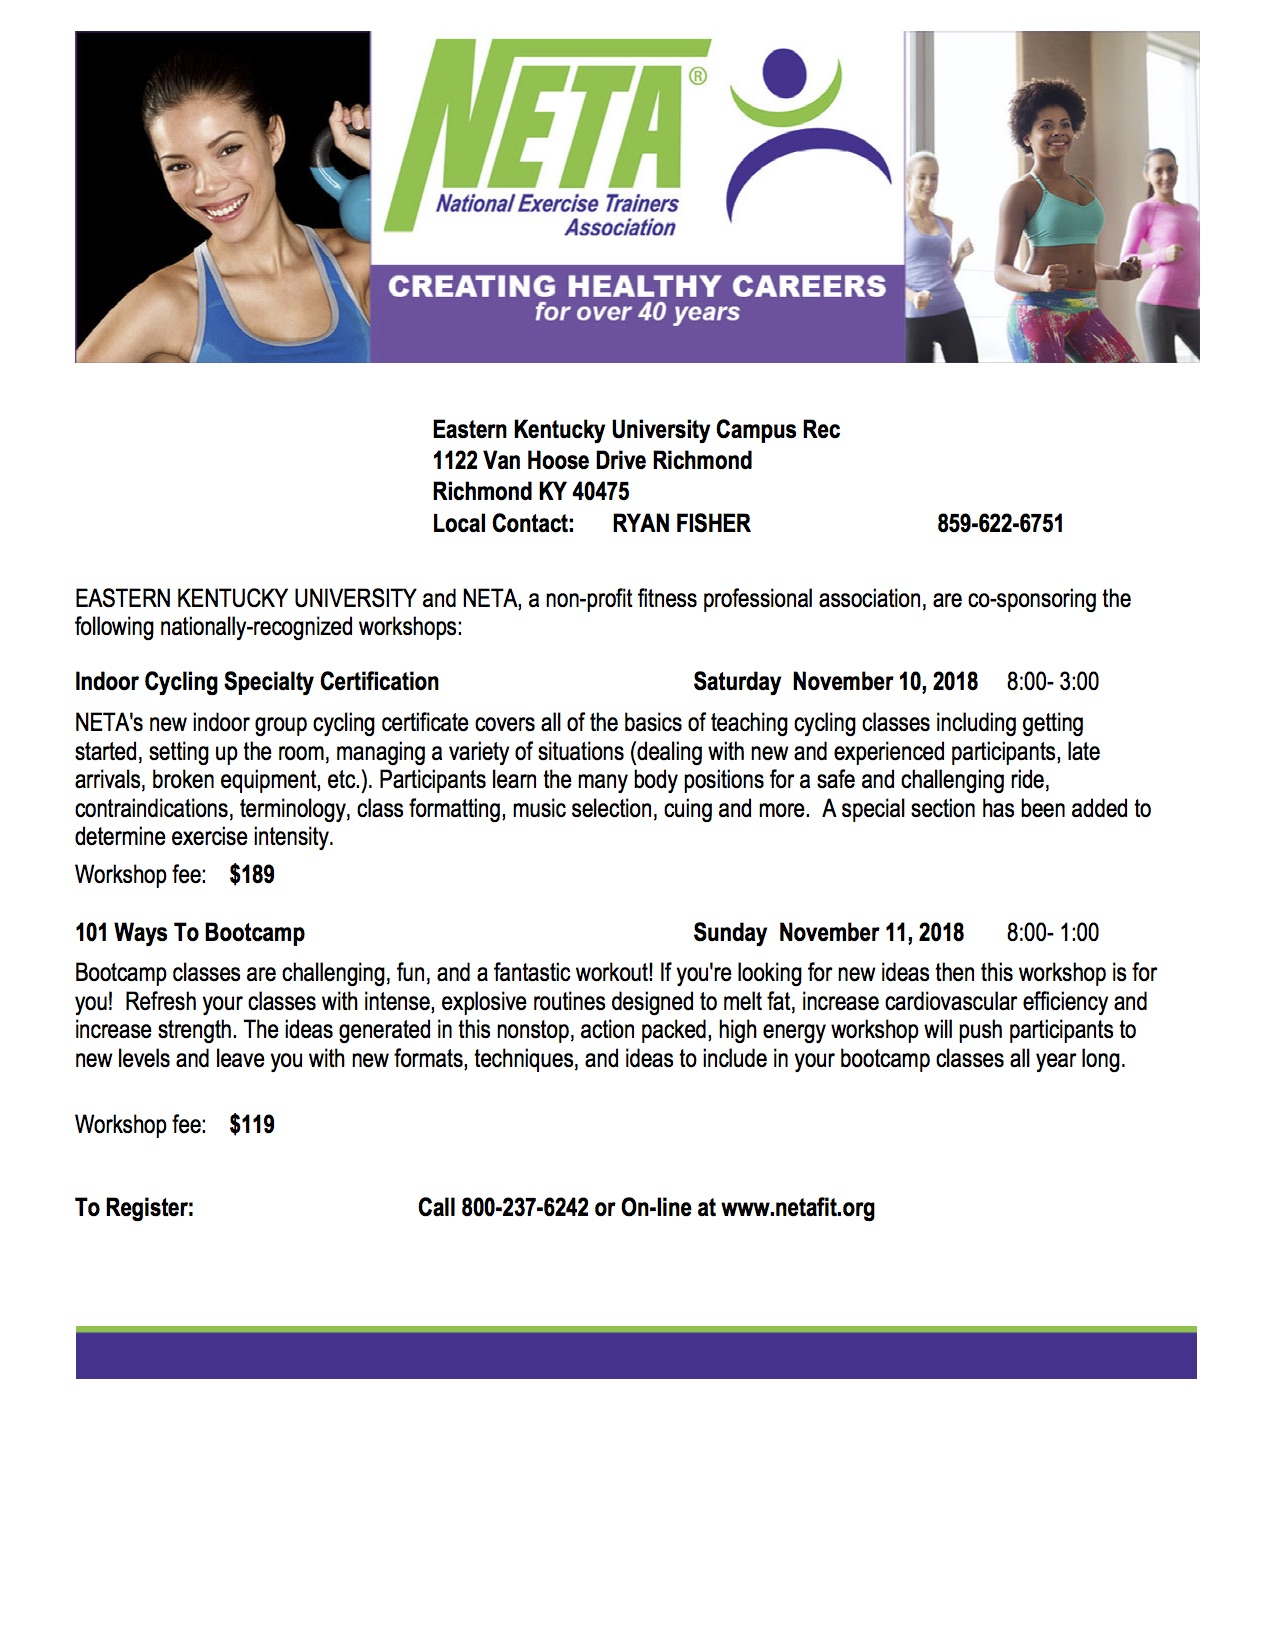 Certifications And Workshops Campus Recreation Eastern Kentucky